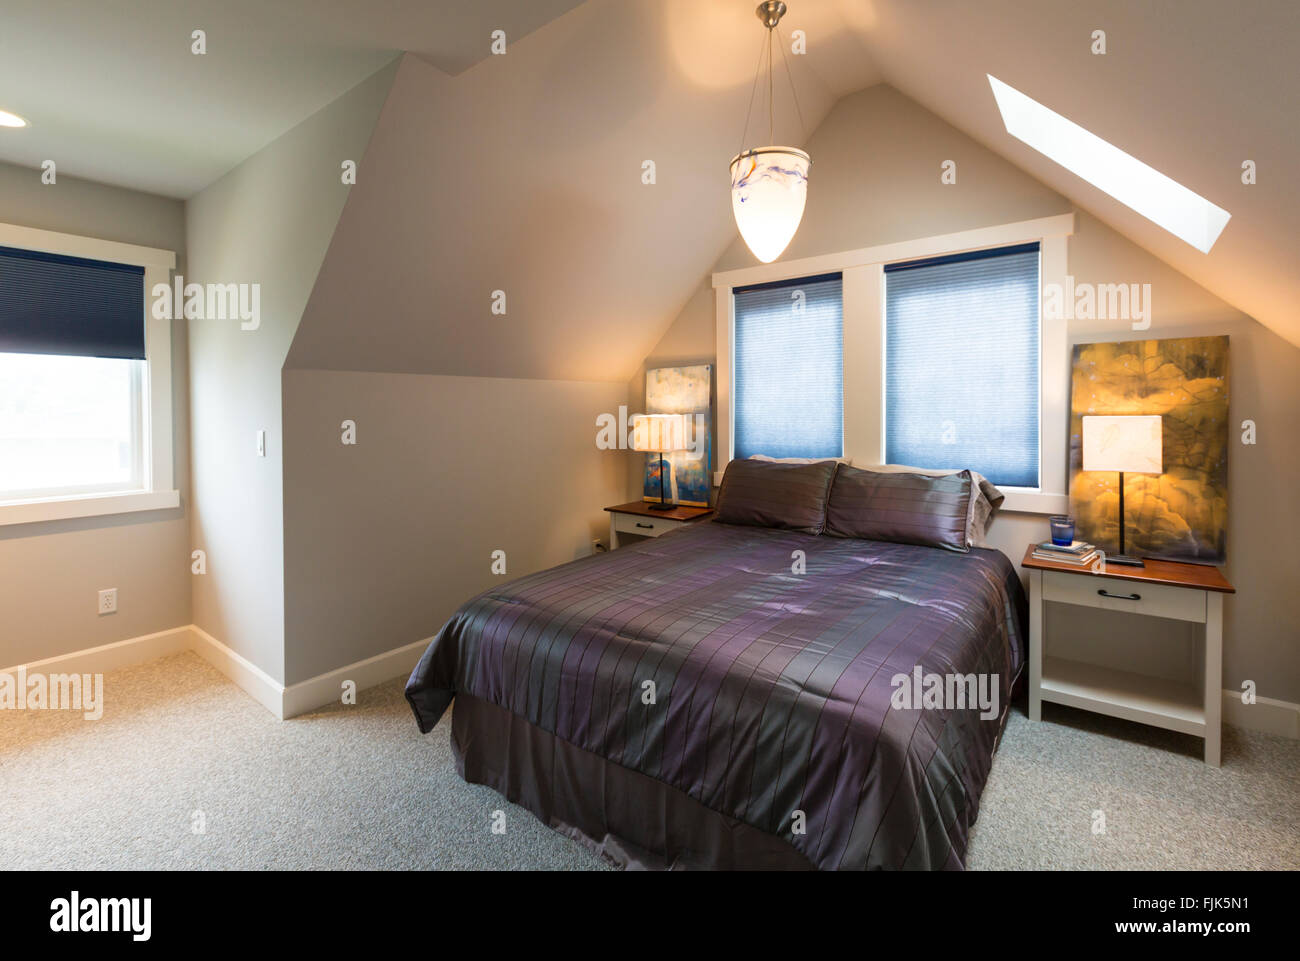 Bedroom with bed, bedside tables, vaulted ceiling, windows with window coverings, artwork and accent lighting in Stock Photo